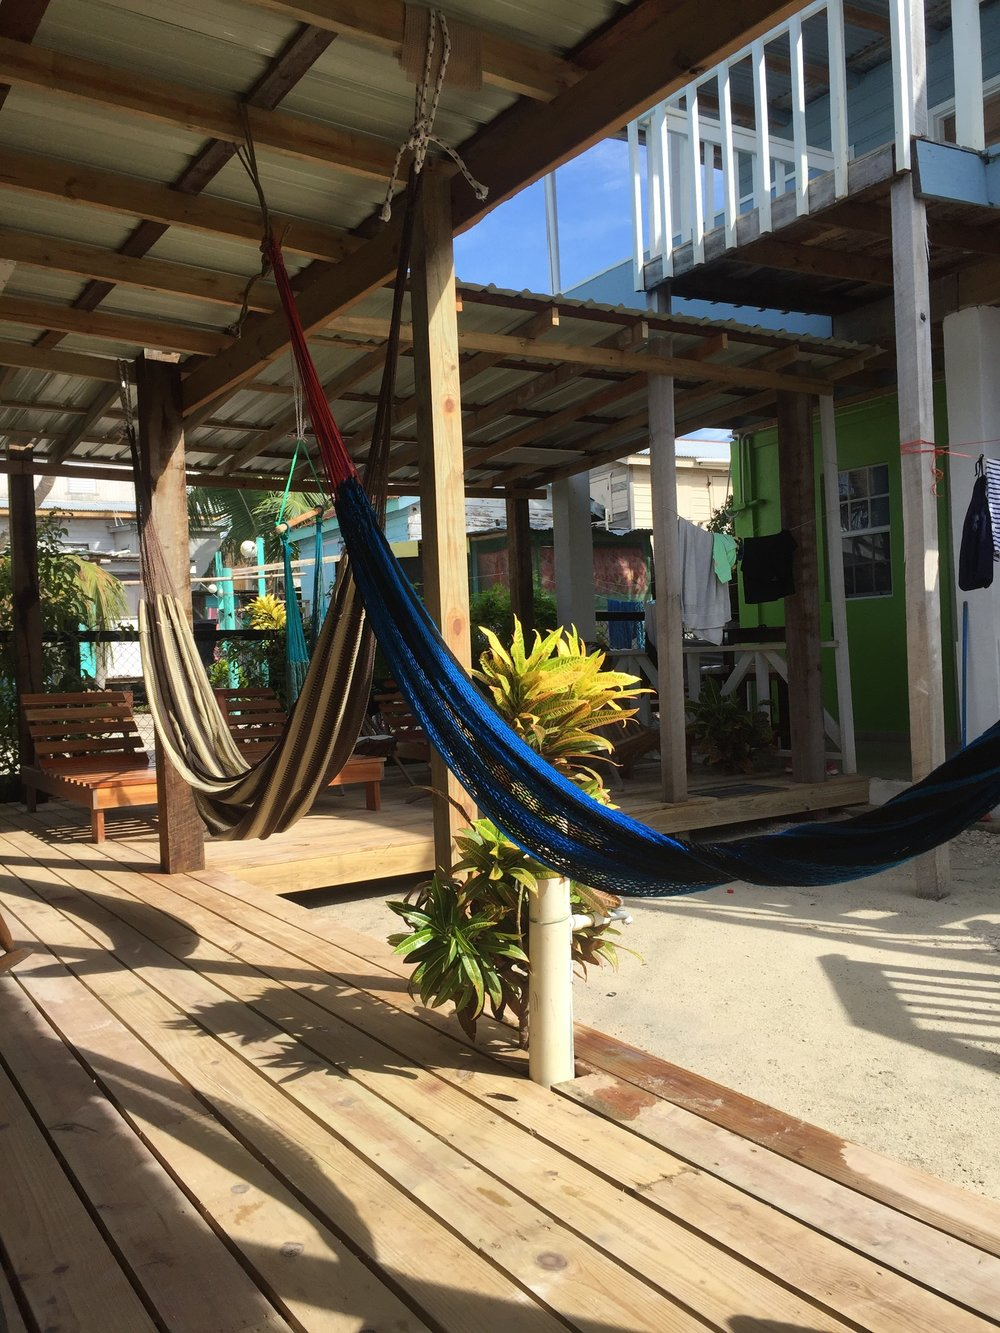 Hammocks at my hostel in Caye Caulker, Belize on a sunny day.